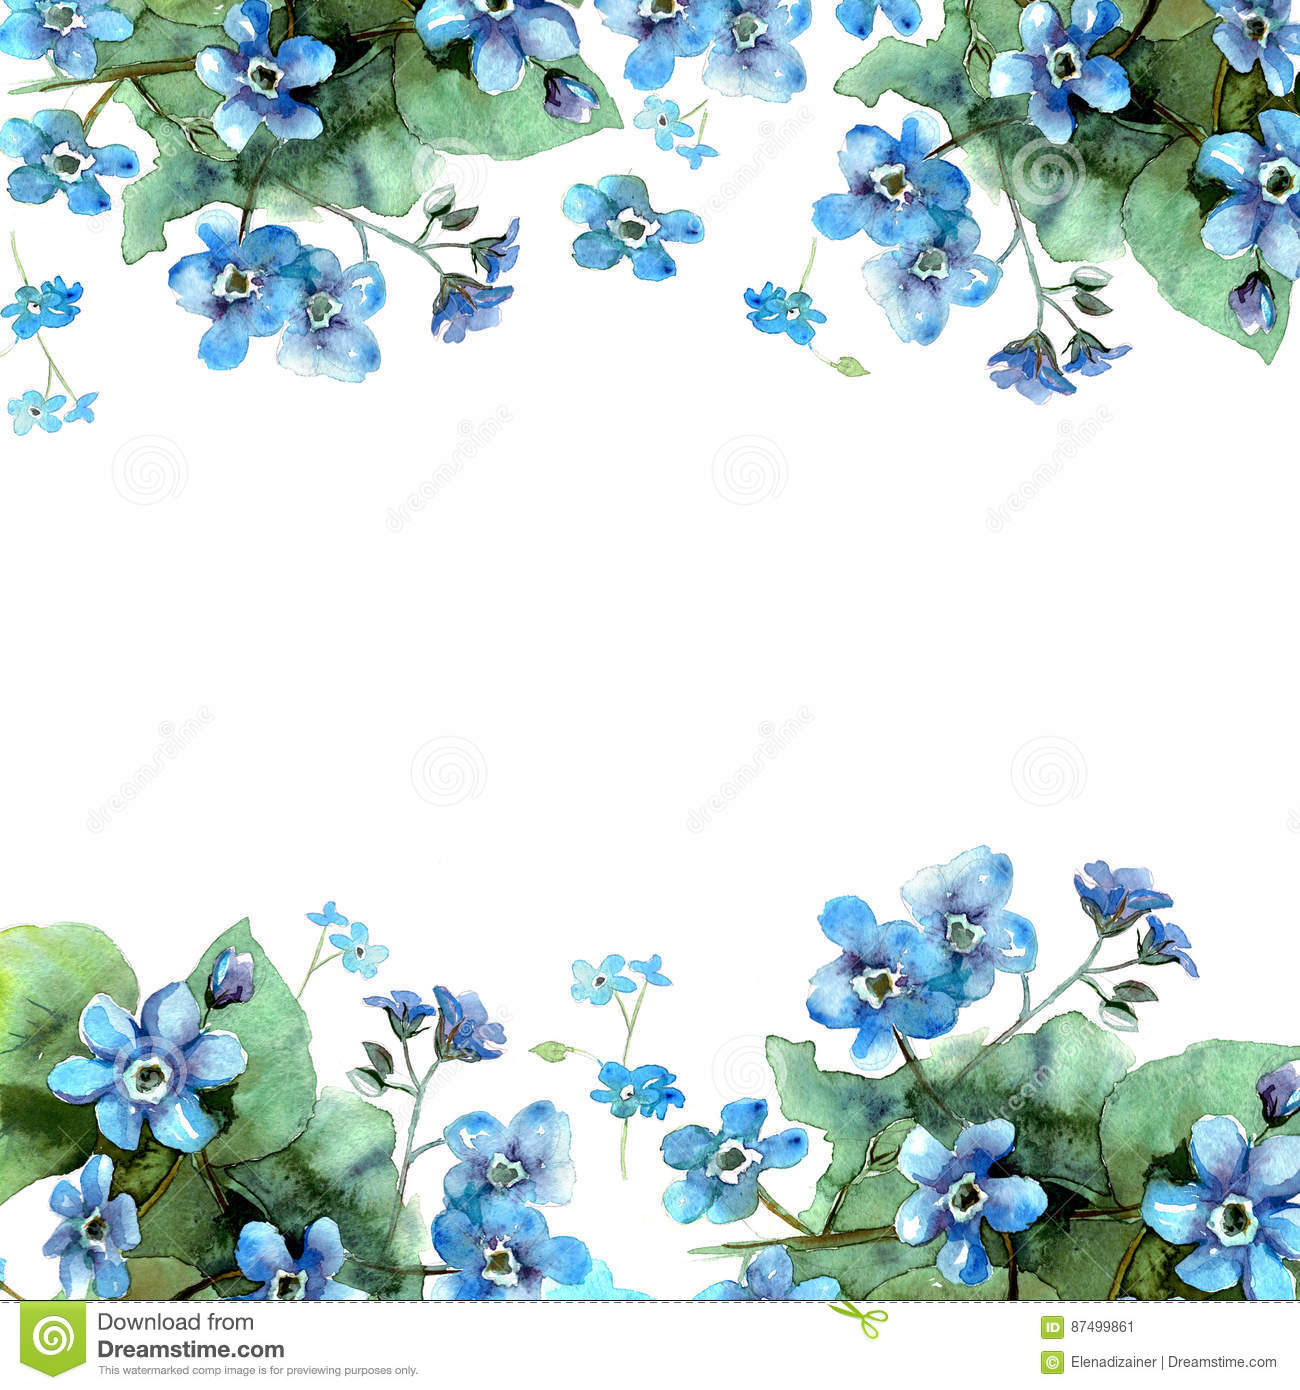 Download Cute Watercolor Flower Border Background With Blue Forget Me Nots Stock Illustration